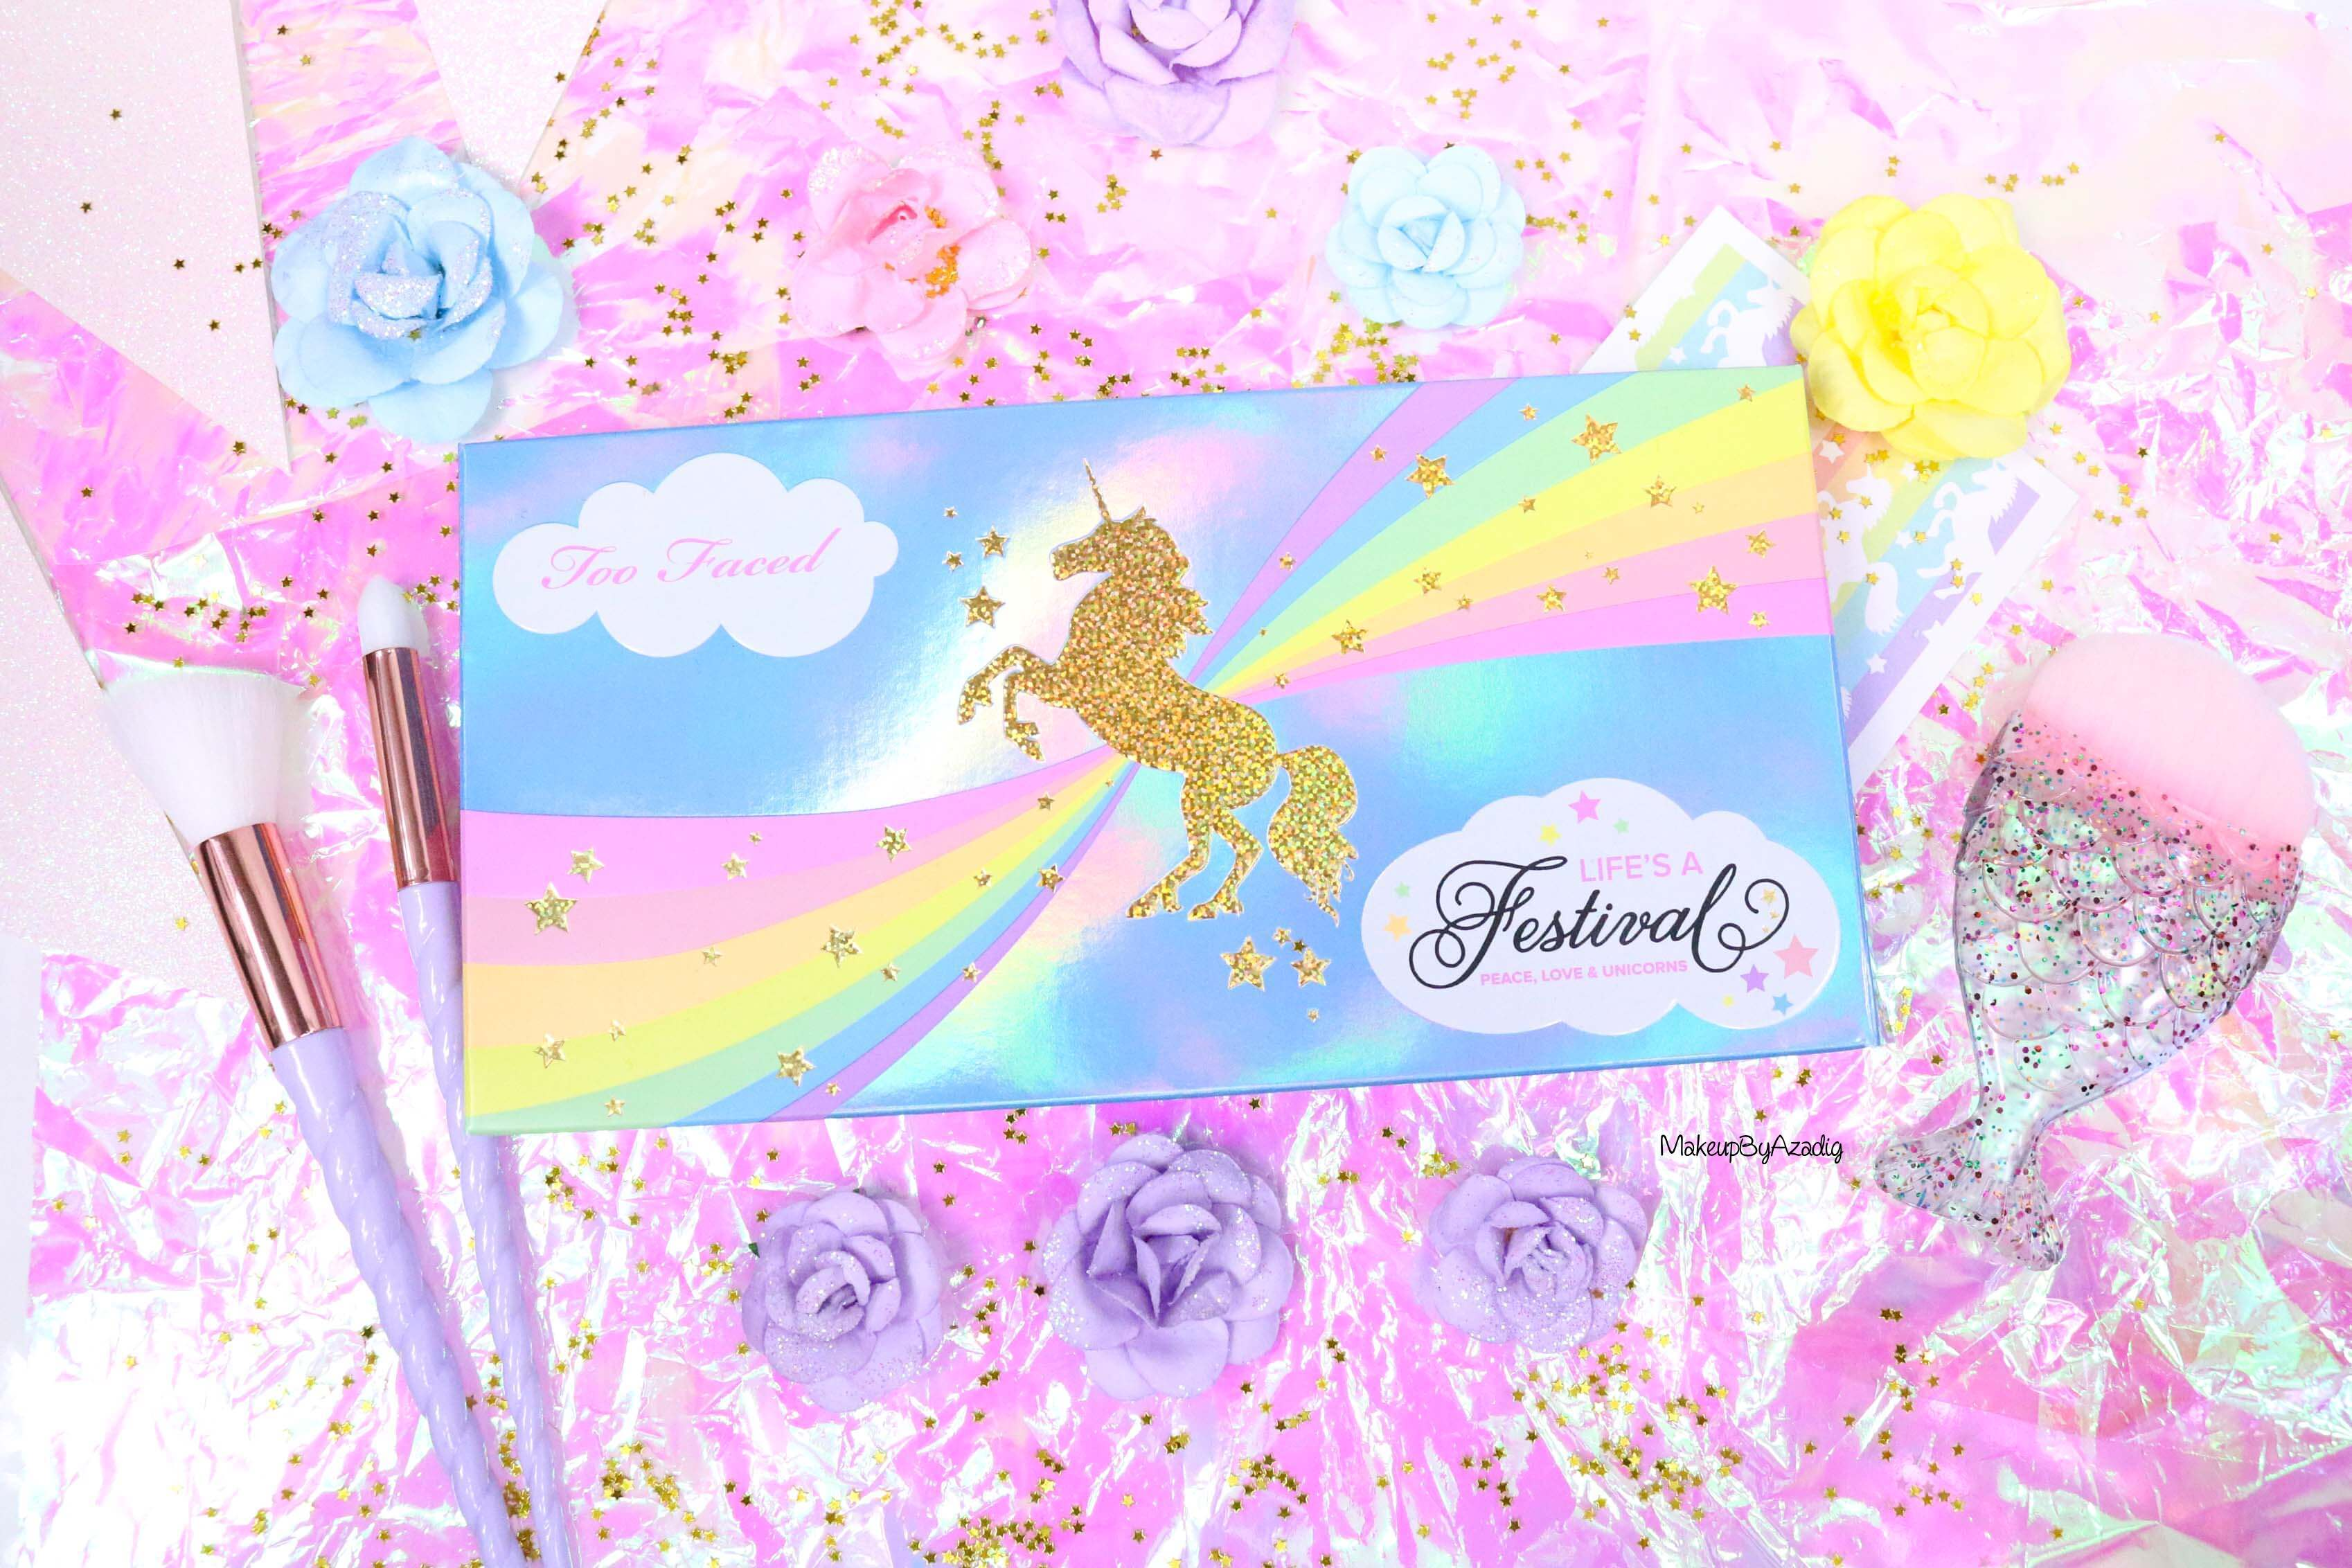 revue-palette-lifes-a-festival-too-faced-france-sephora-avis-prix-revue-makeupbyazadig-collection-licorne-packaging